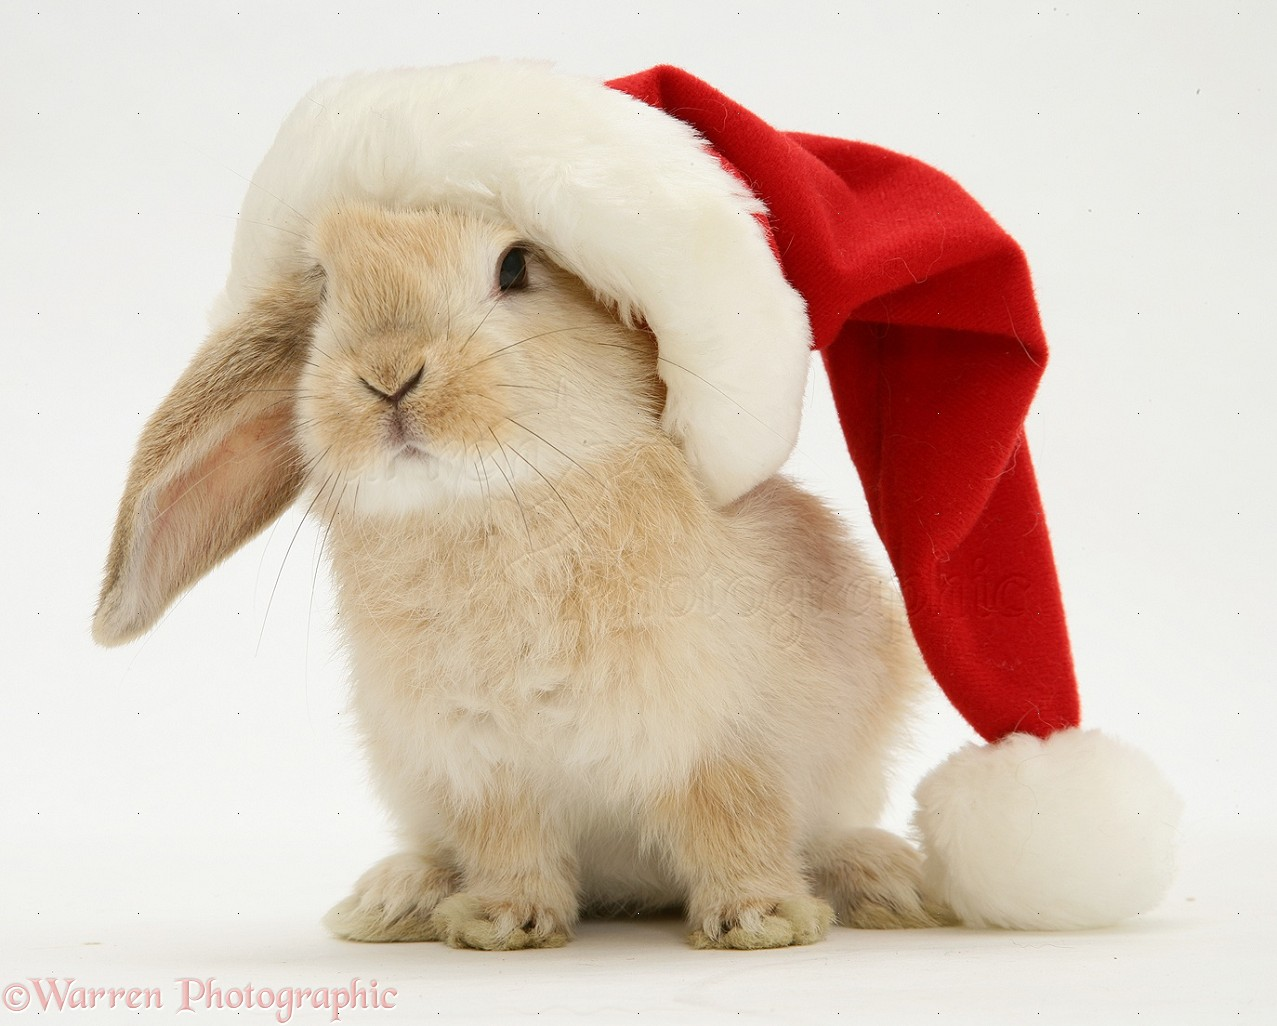 Rabbit in a Santa hat